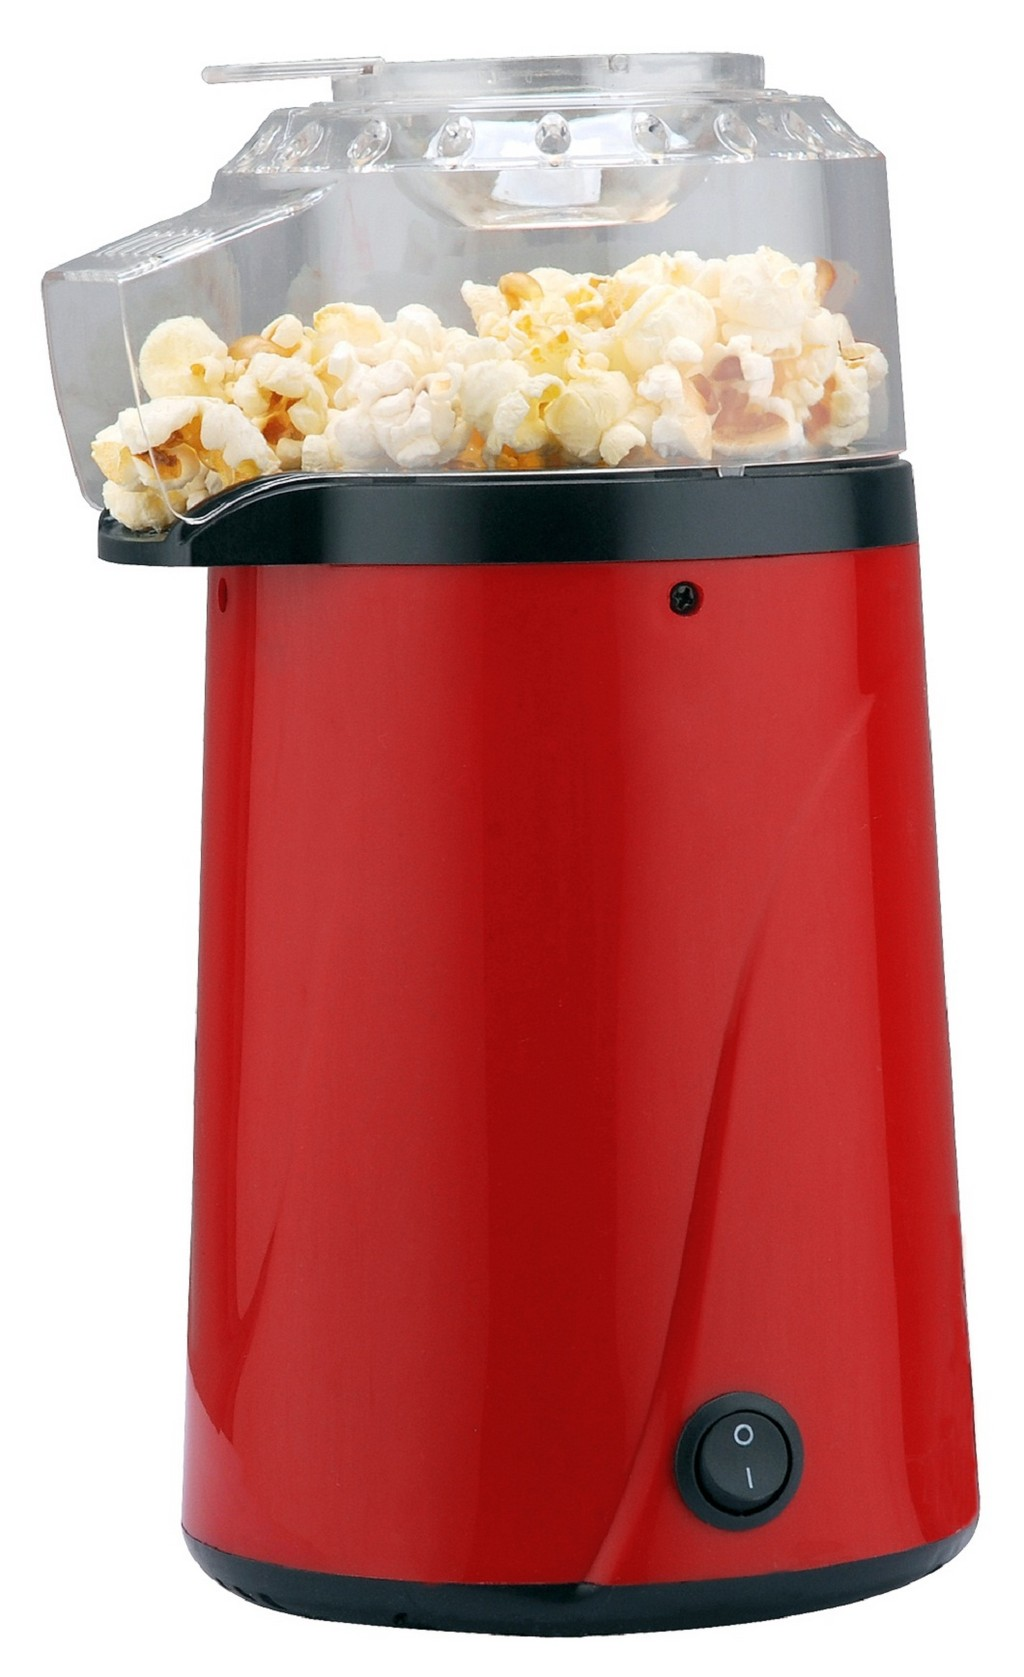 discounted popcorn machine, catamount popcorn popper, funtime popcorn machine